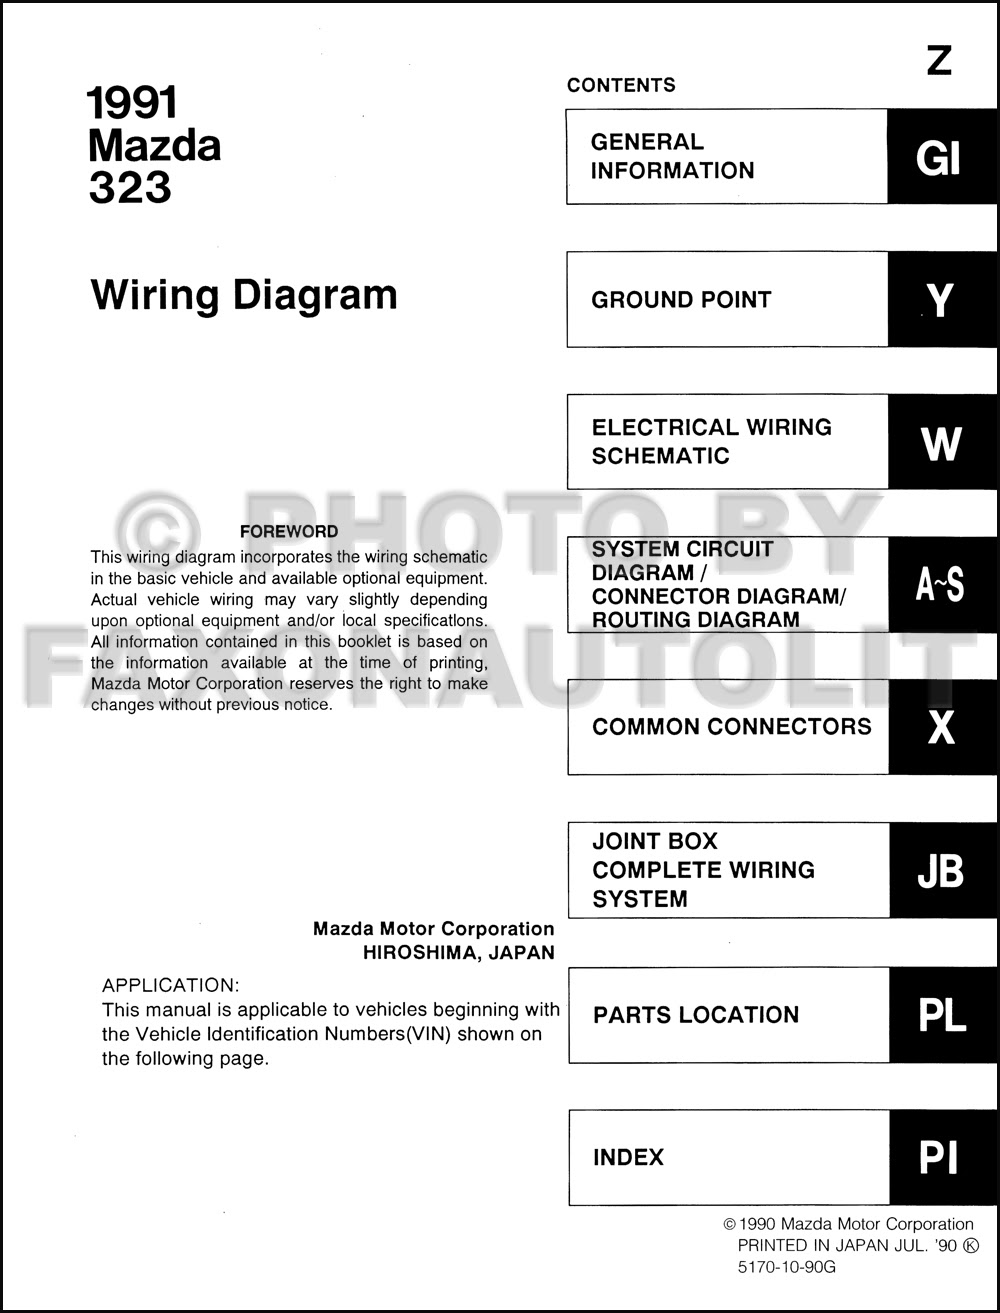 Diagram Mazda 323 Protege Workshop Wiring Diagram Full Version Hd Quality Wiring Diagram Pdfxaltonl Campionatiscipc2020 It